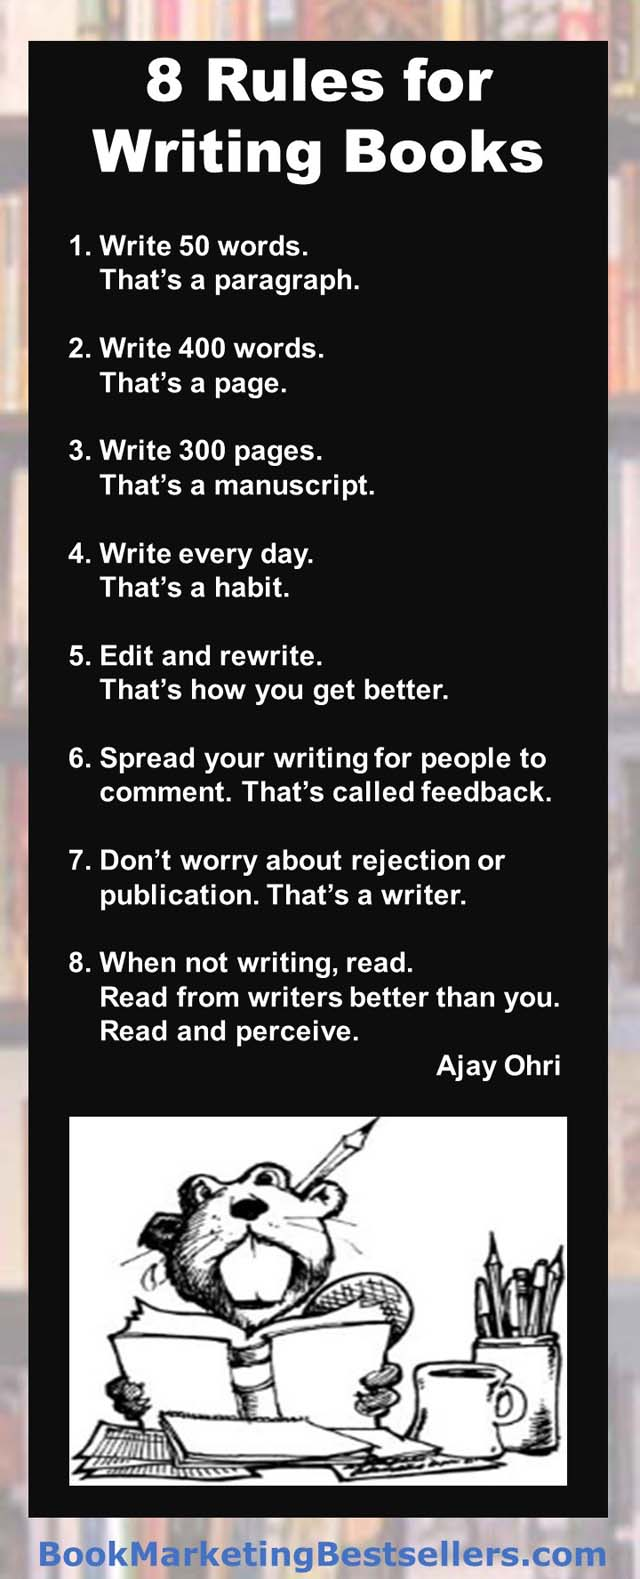 Rules for Writing Books - These rules or observations about writing are worth noting. Any beginning writer should take them to heart. Any experience writer should read them again to remind them where they may have fallen down.